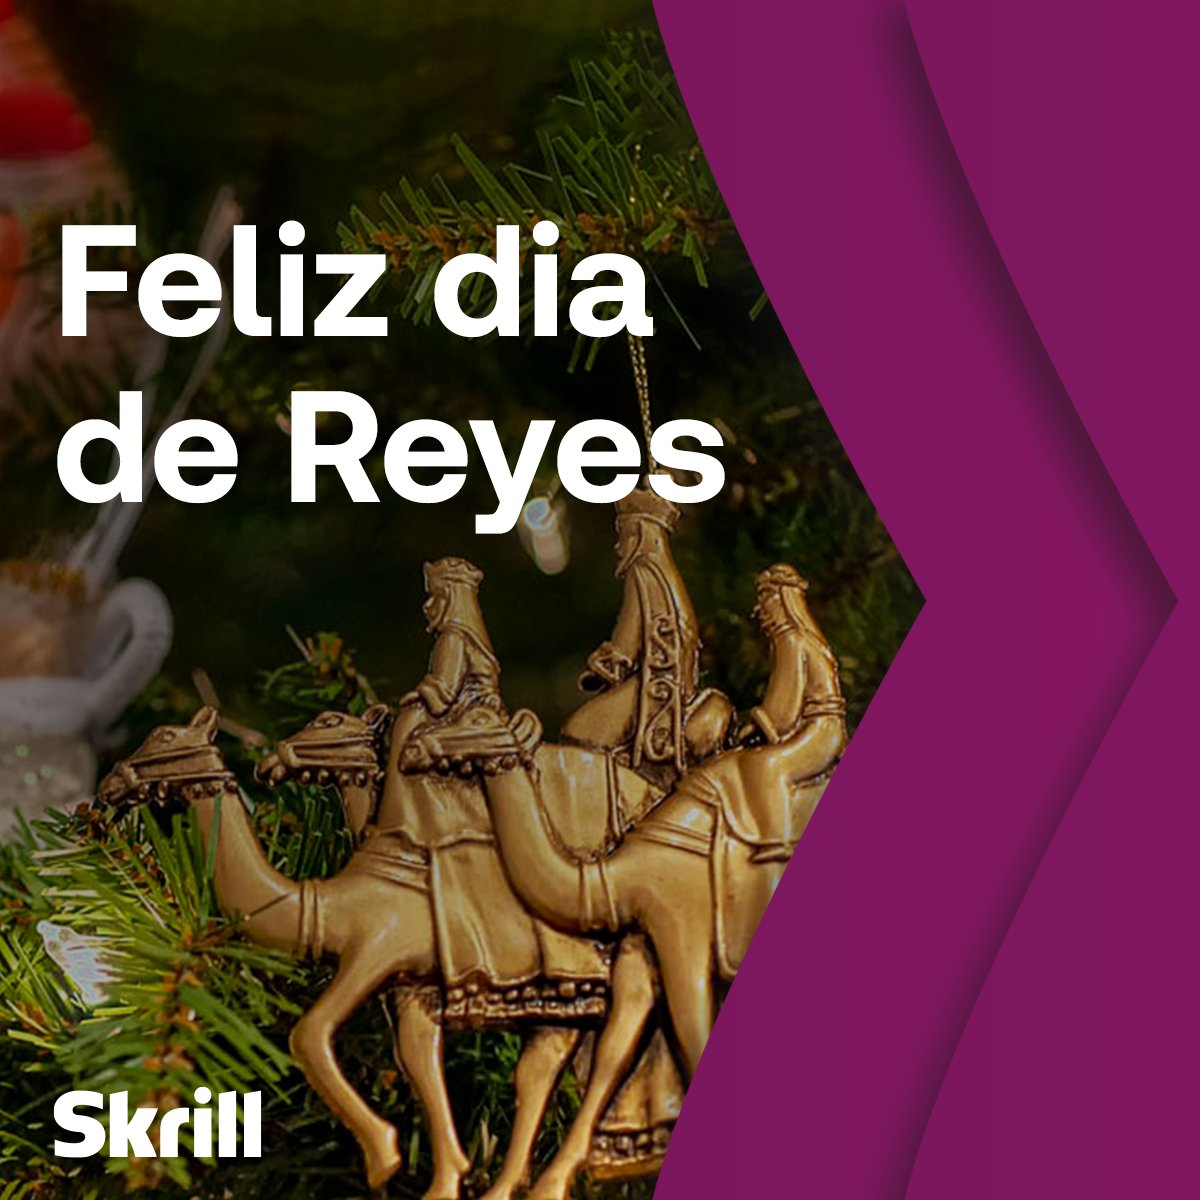 Happy Dia de Reyes! ✨  Have a great start of the year and send a small gift to your loved ones with Skrill Money Transfer.  There's ZERO transfer fees when you send to a bank account abroad.  Get started 👉 https://t.co/4ICZiTW7TZ  #diadereyes https://t.co/4NFAsn21Ob